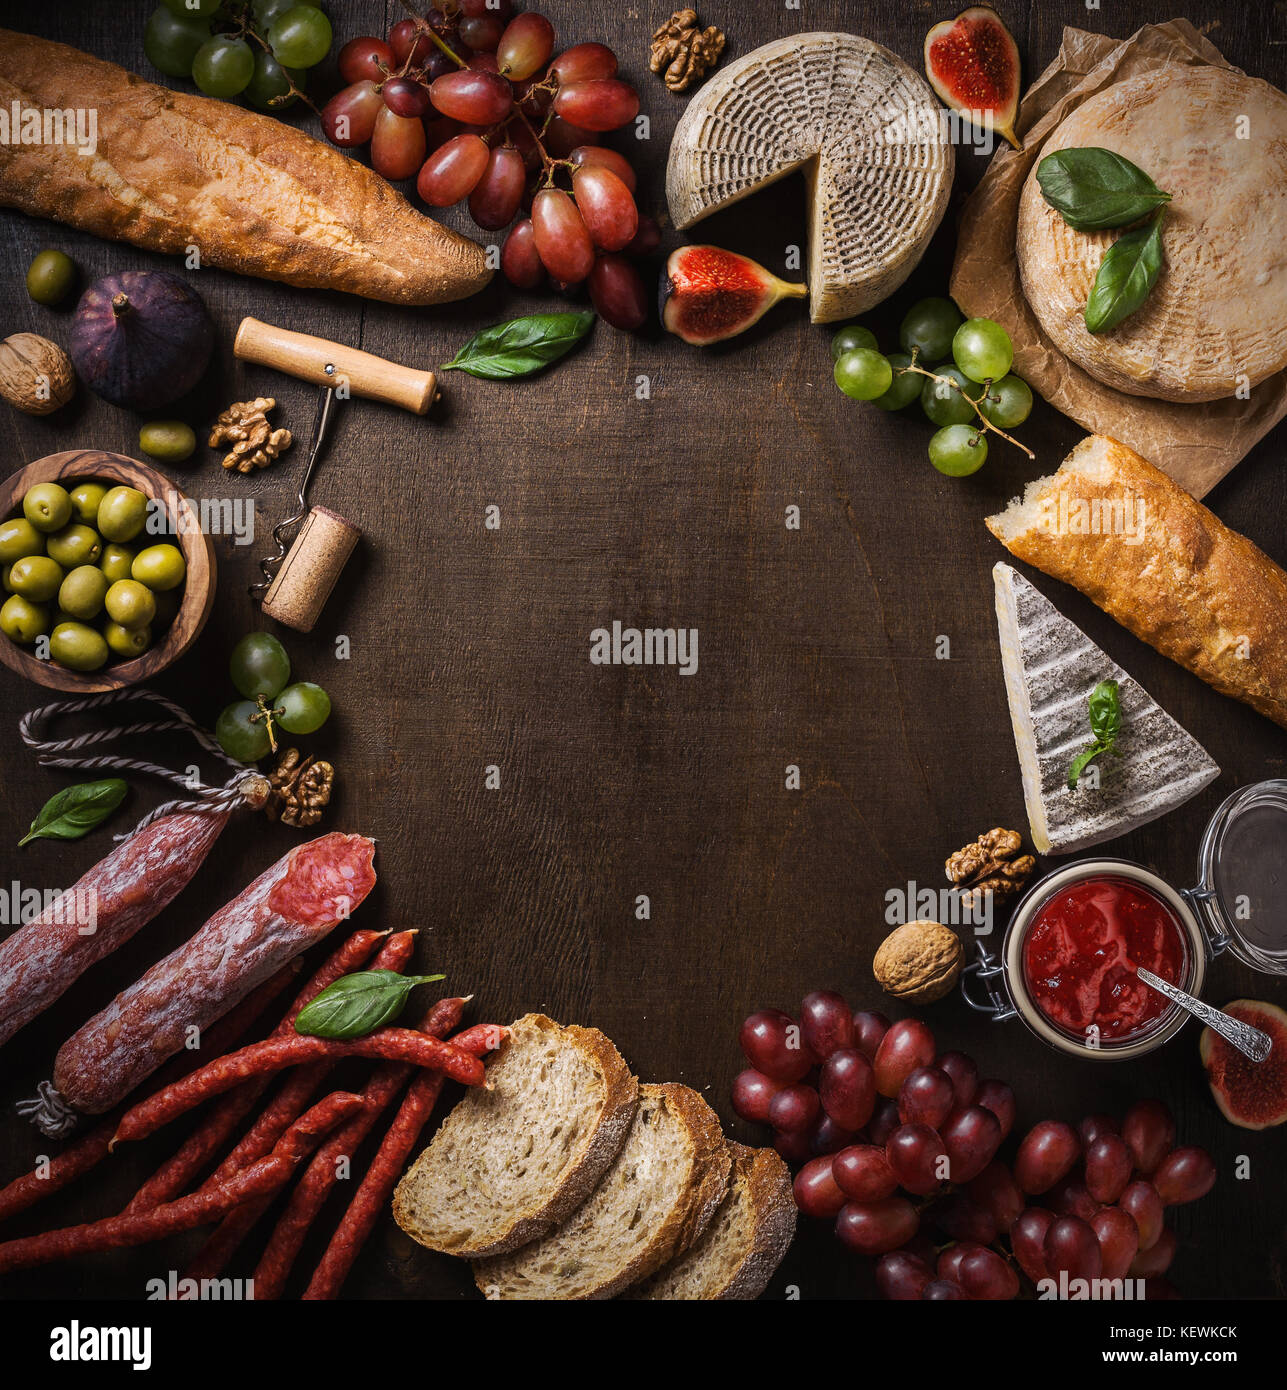 Flat lay composition with cheese, meat and fruits. Top view, copy space - Stock Image